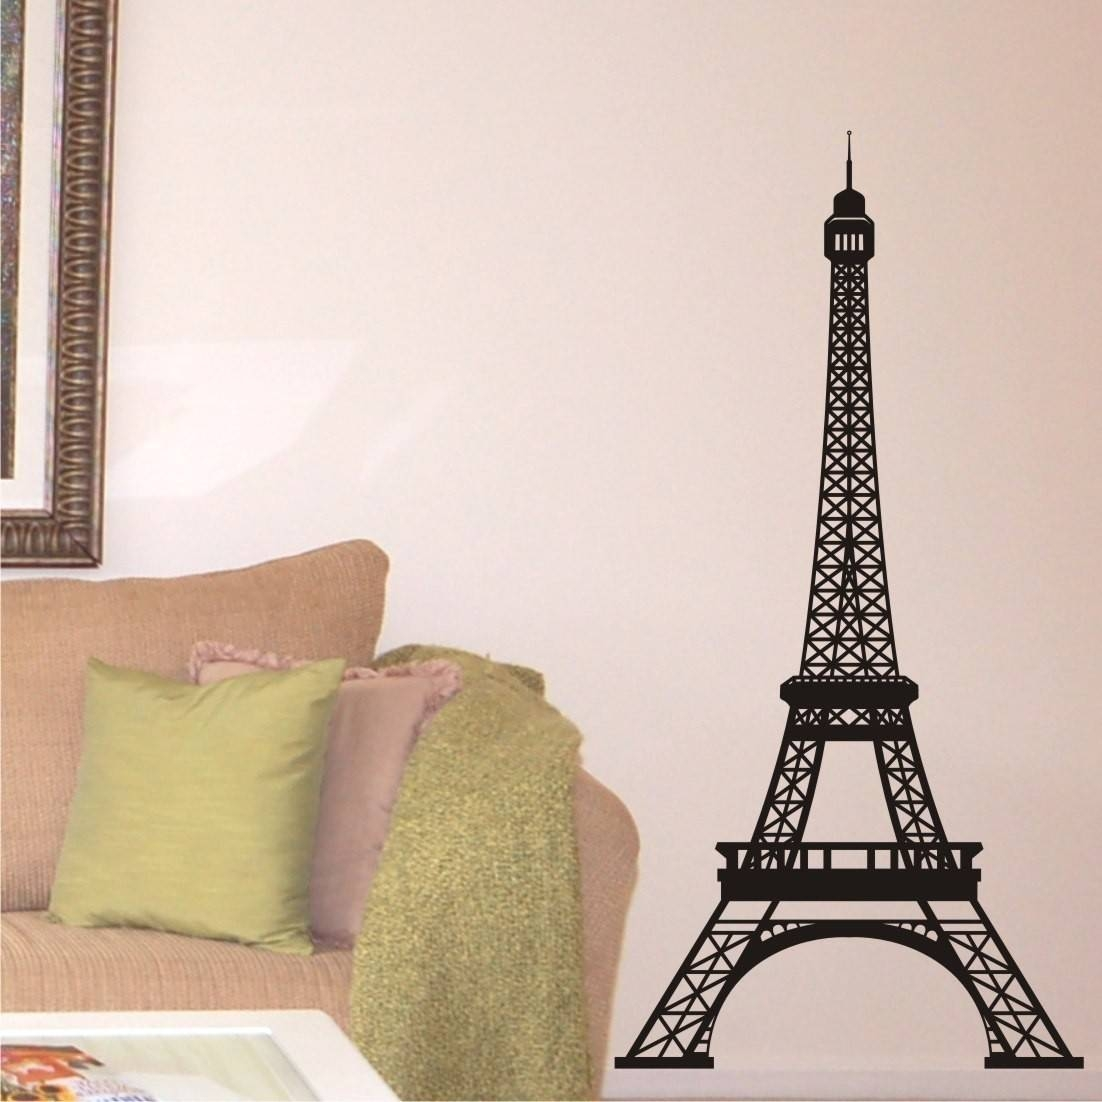 Eiffel Tower Wall Decor Make A Photo Gallery Eiffel Tower Wall With Current Eiffel Tower Wall Art (View 8 of 20)